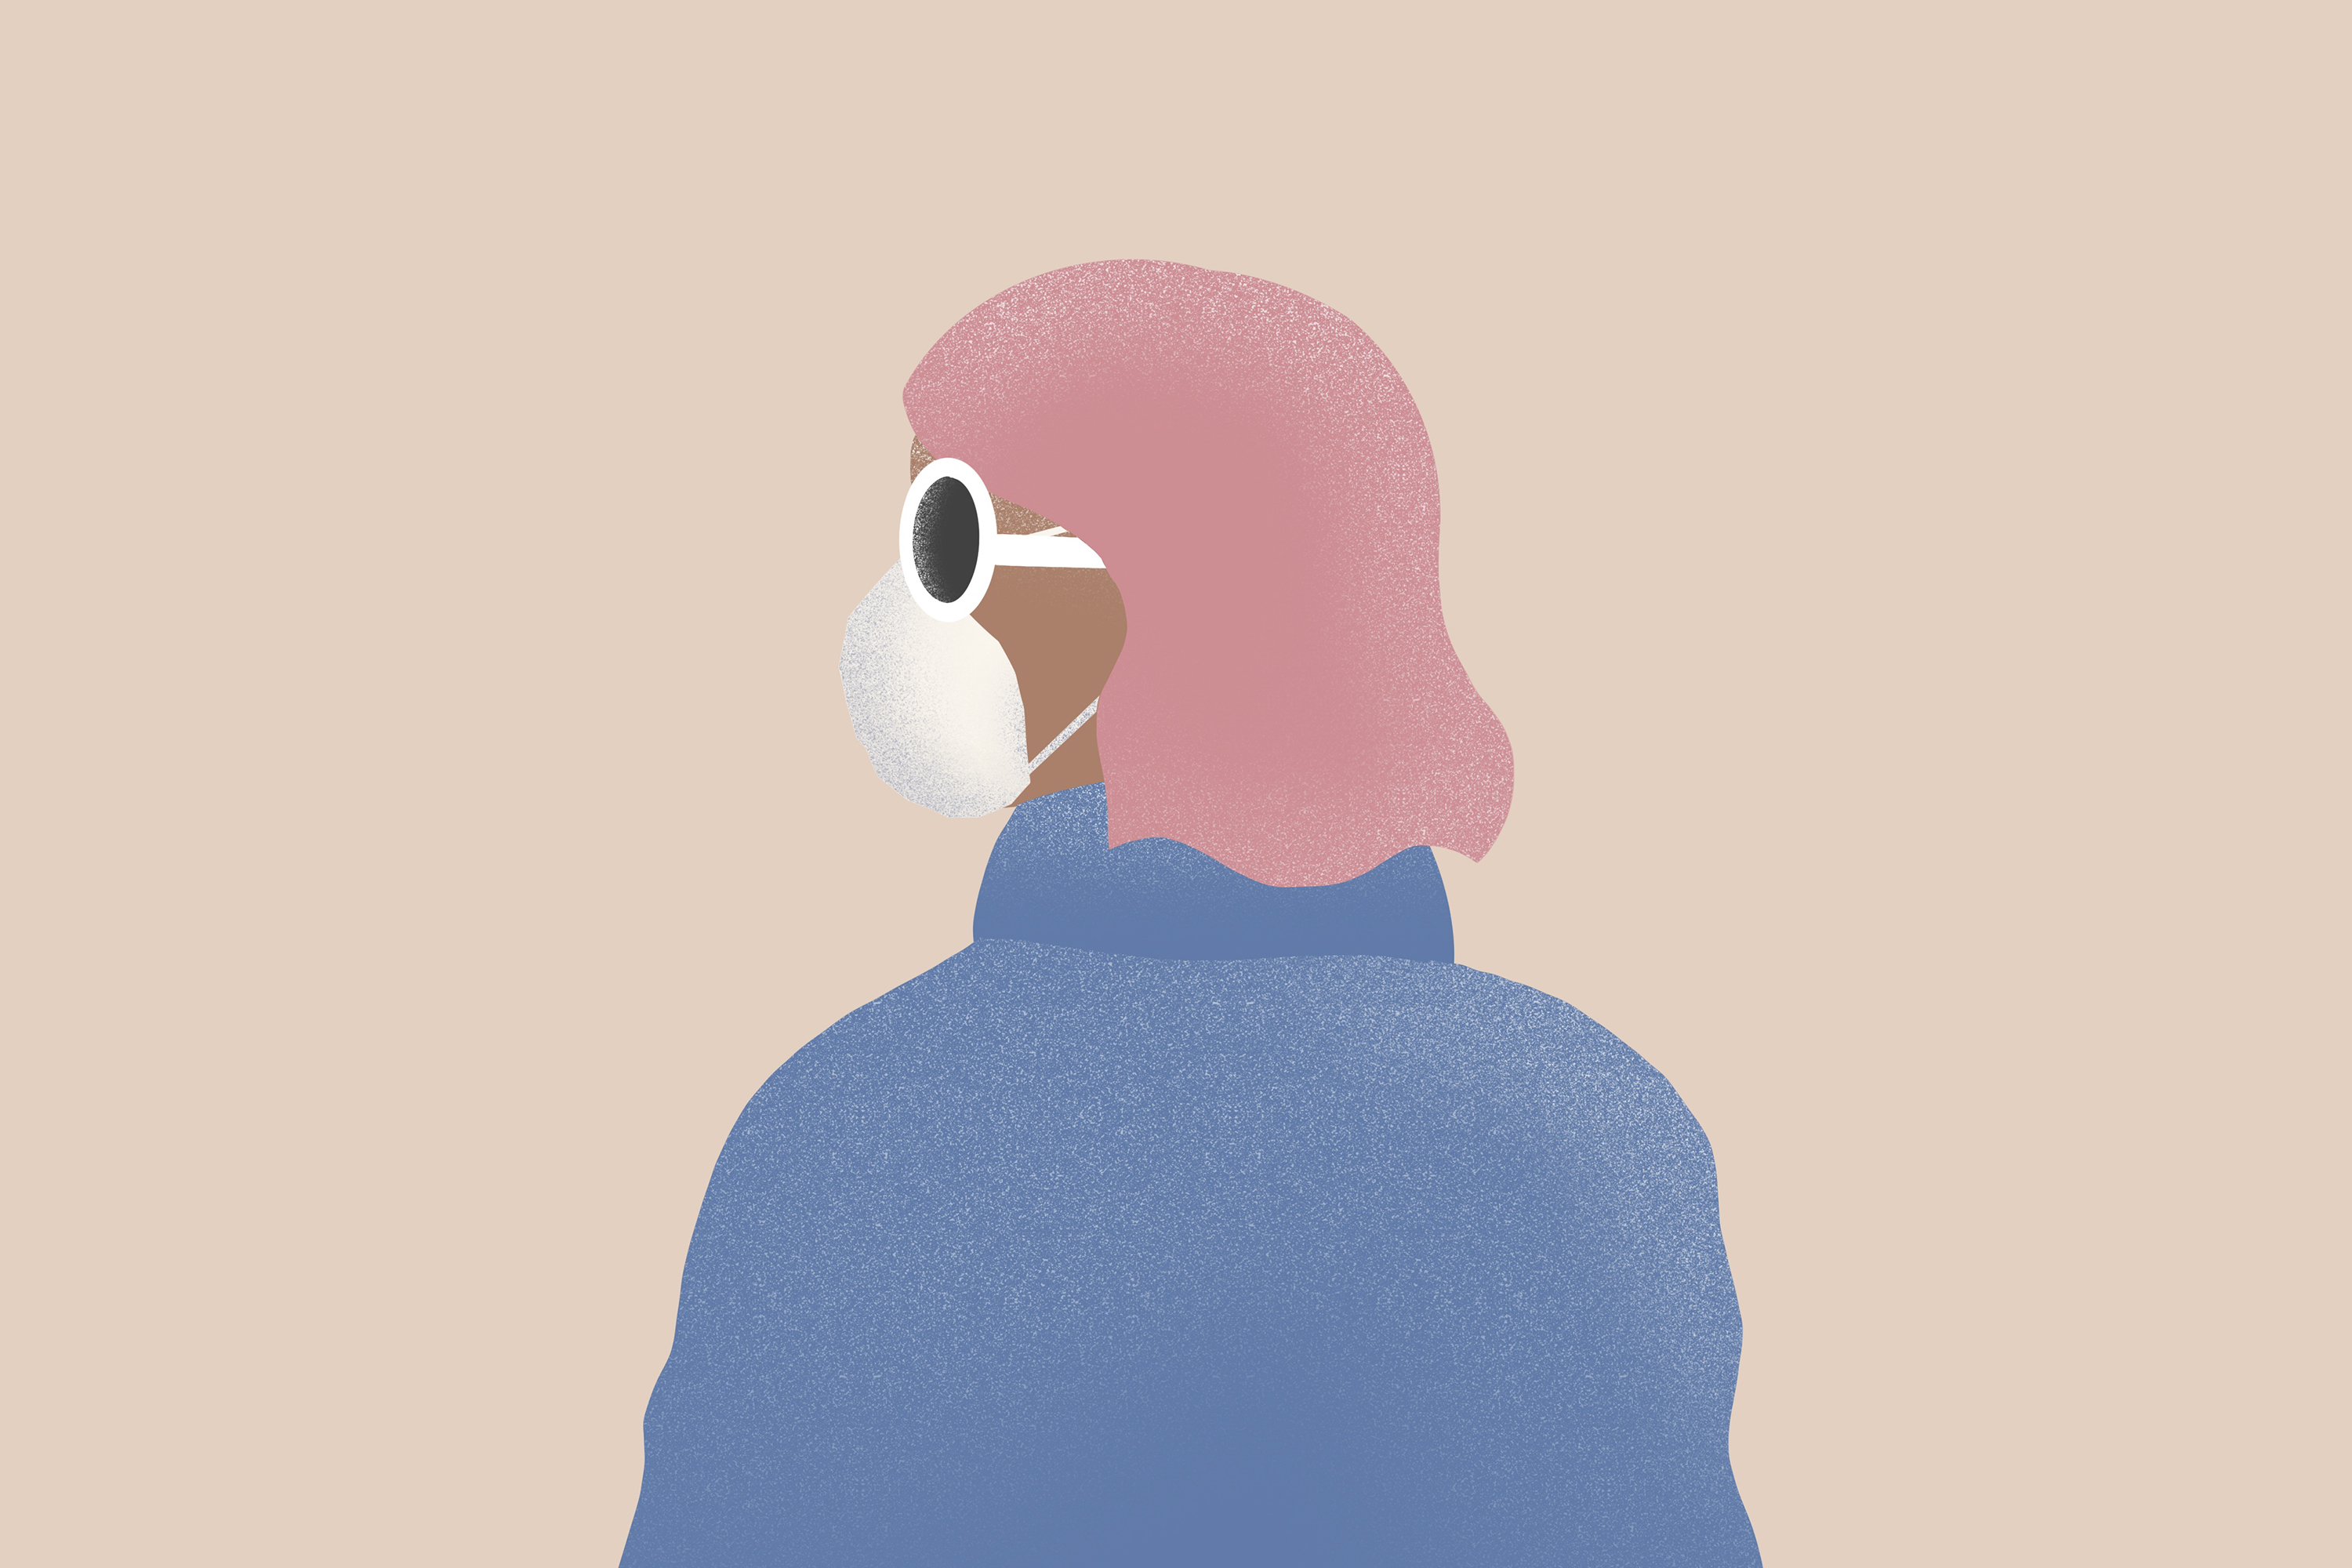 An illustration of a woman wearing a face mask